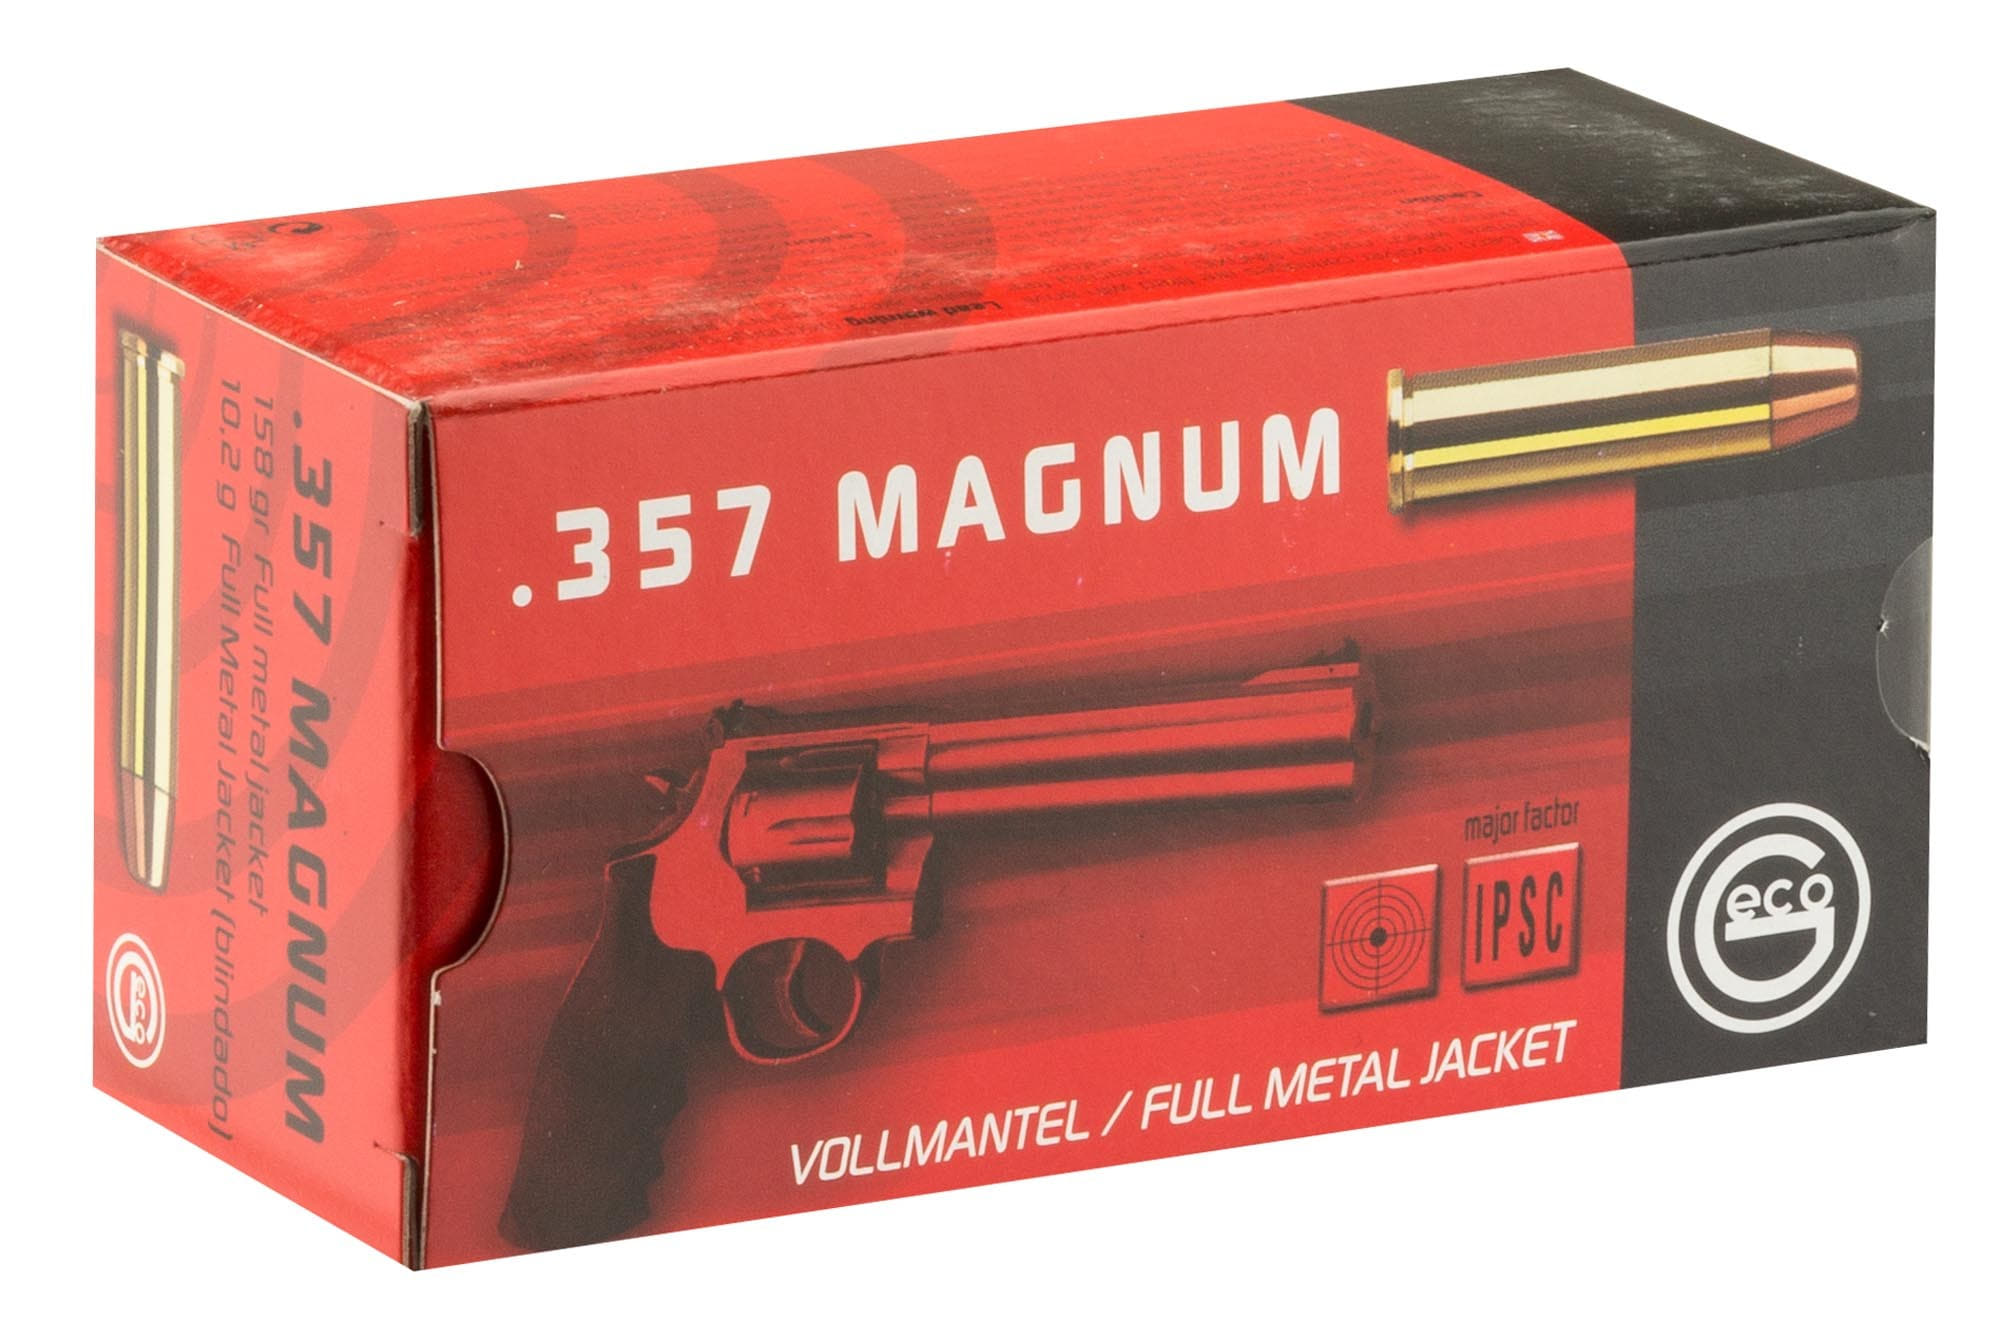 MR830-1 Cartouches Geco 357 Magnum - MR835